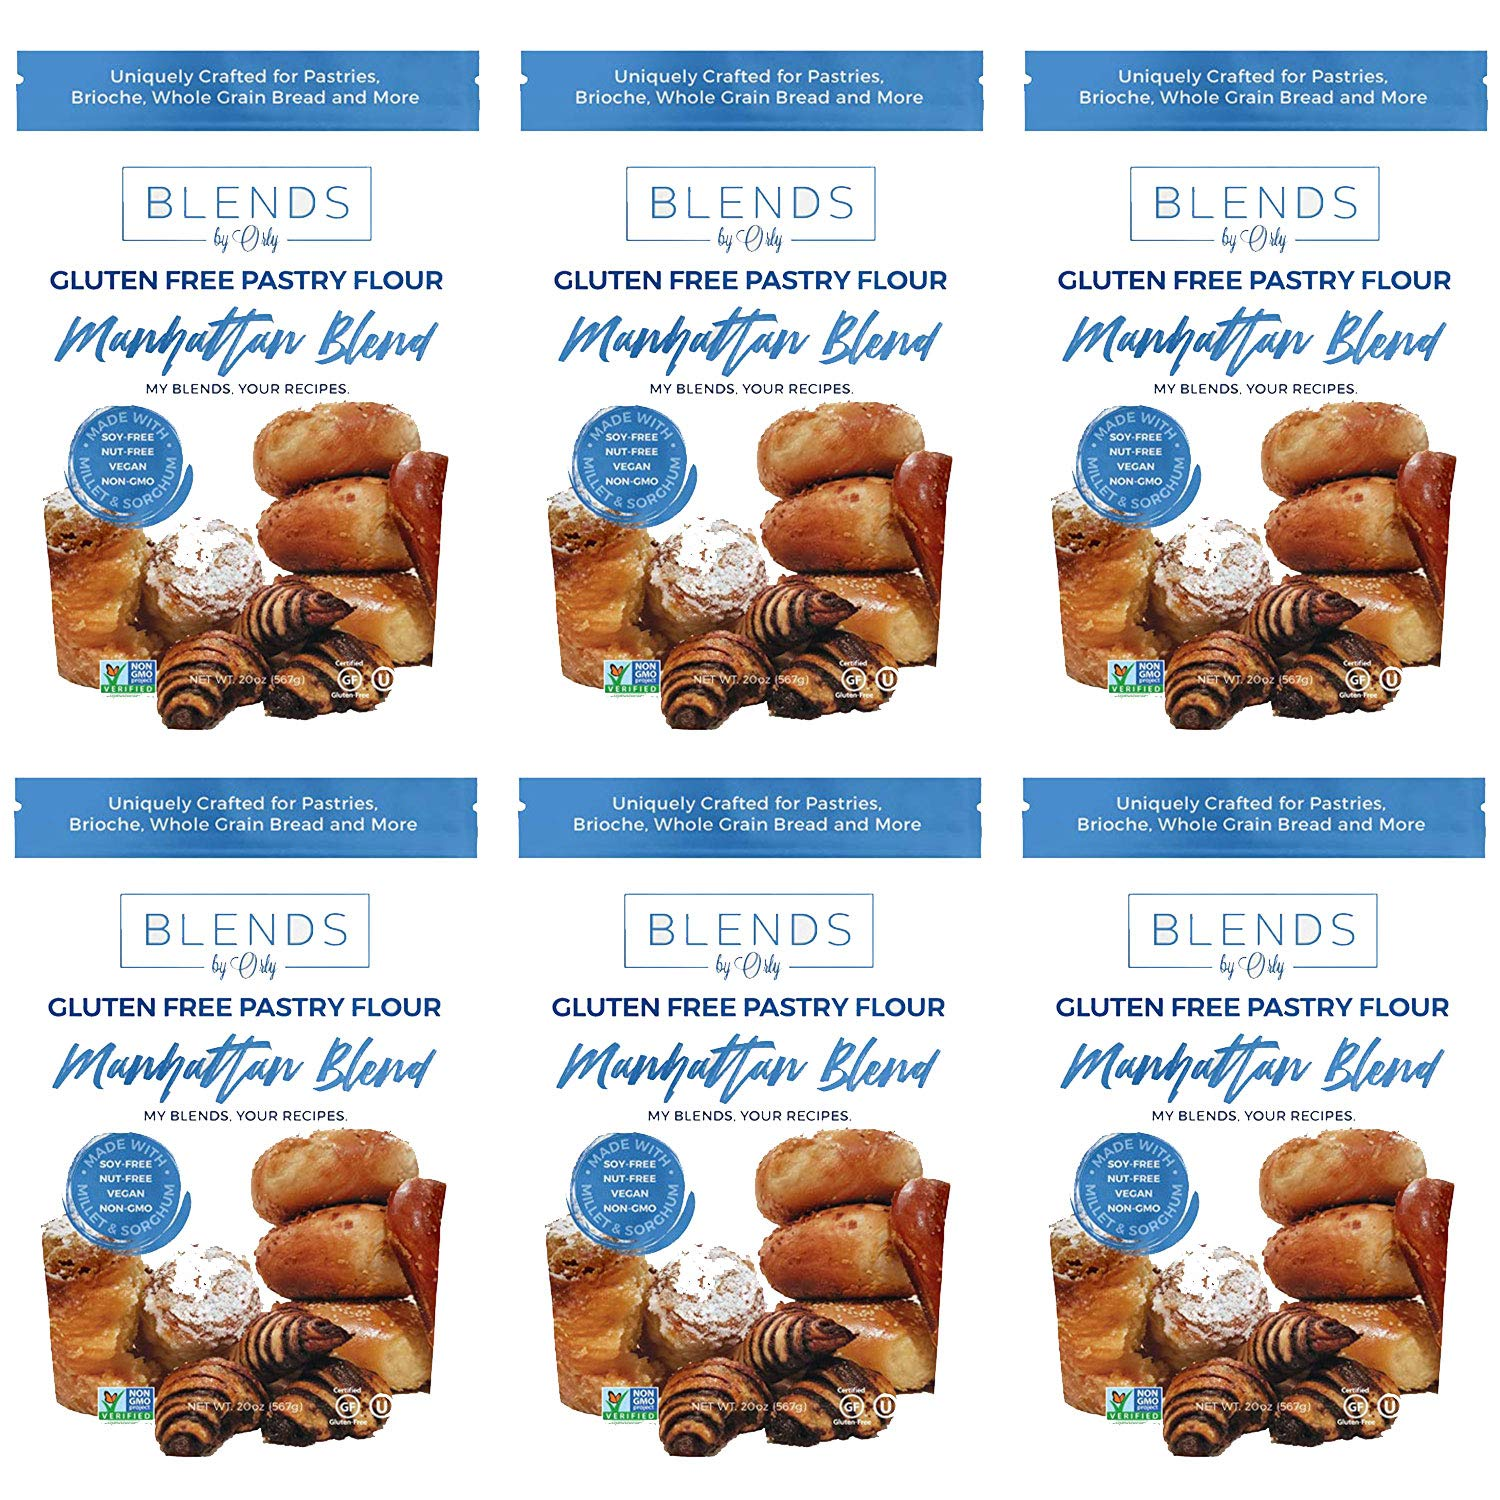 Premium Gluten Free Pastry Flour | Gluten Free Donut Flour - Baking Flour for Gluten Free Challah Bread, GF Brioche Bread, GF Cinnamon Roll, GF Bagels from Manhattan Blends by Orly 120 OZ (Pack of 6) by Blends By Orly (Image #1)